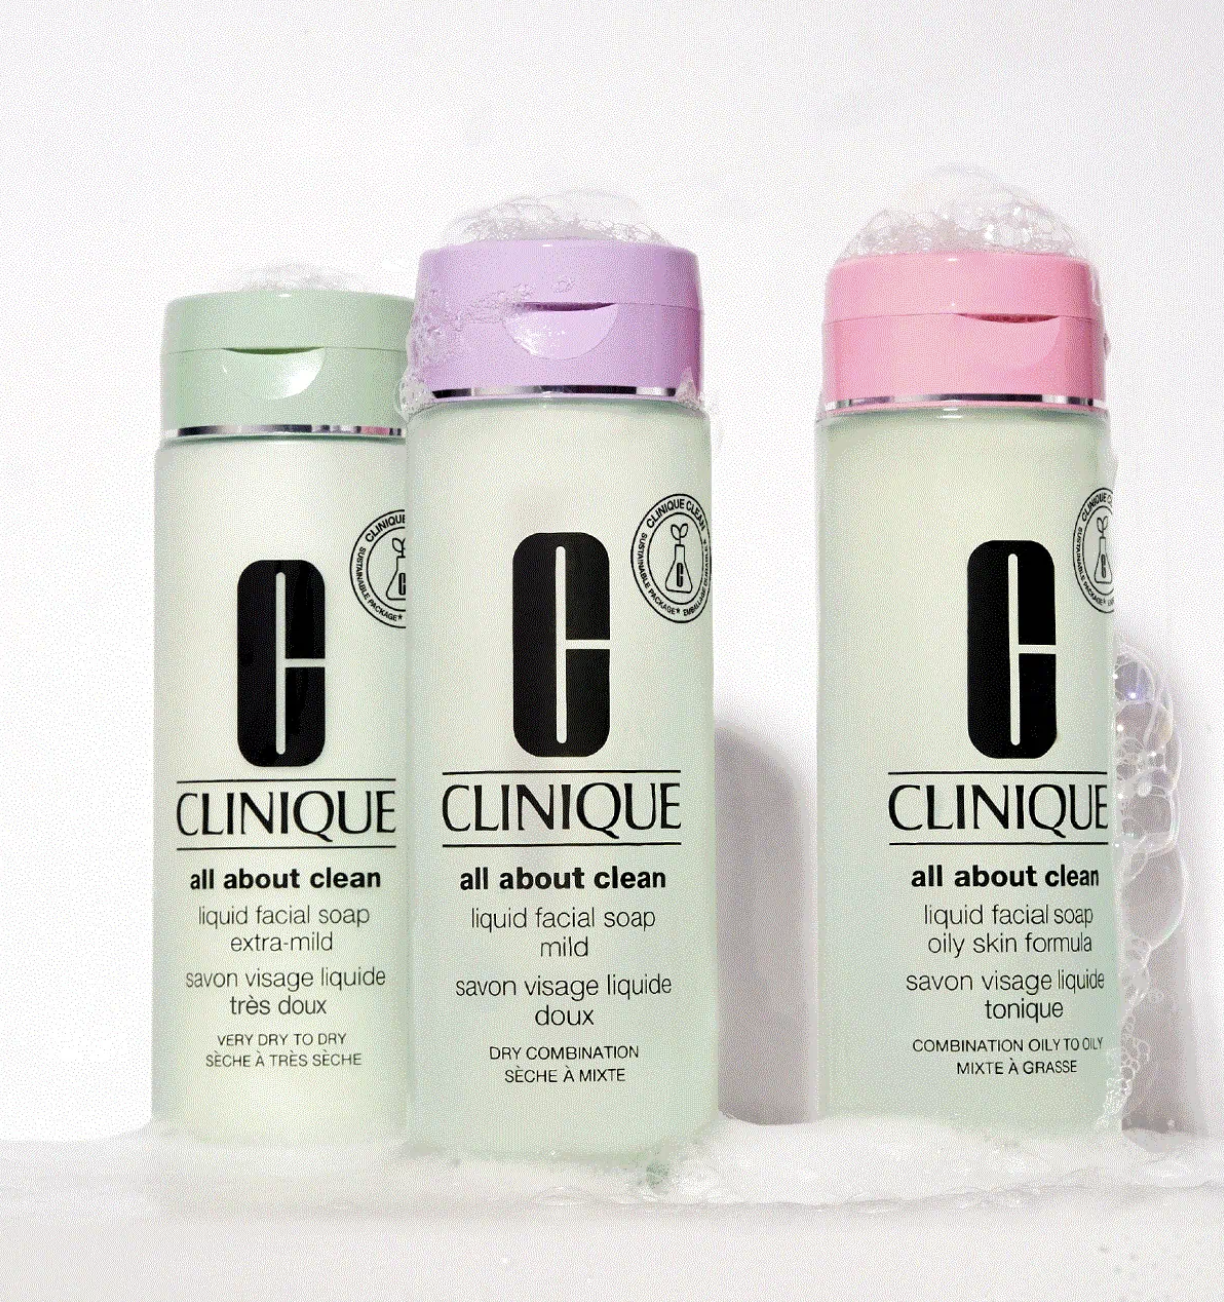 three versions of the cleanser in very dry to dry, dry combination, and combination oily to oily